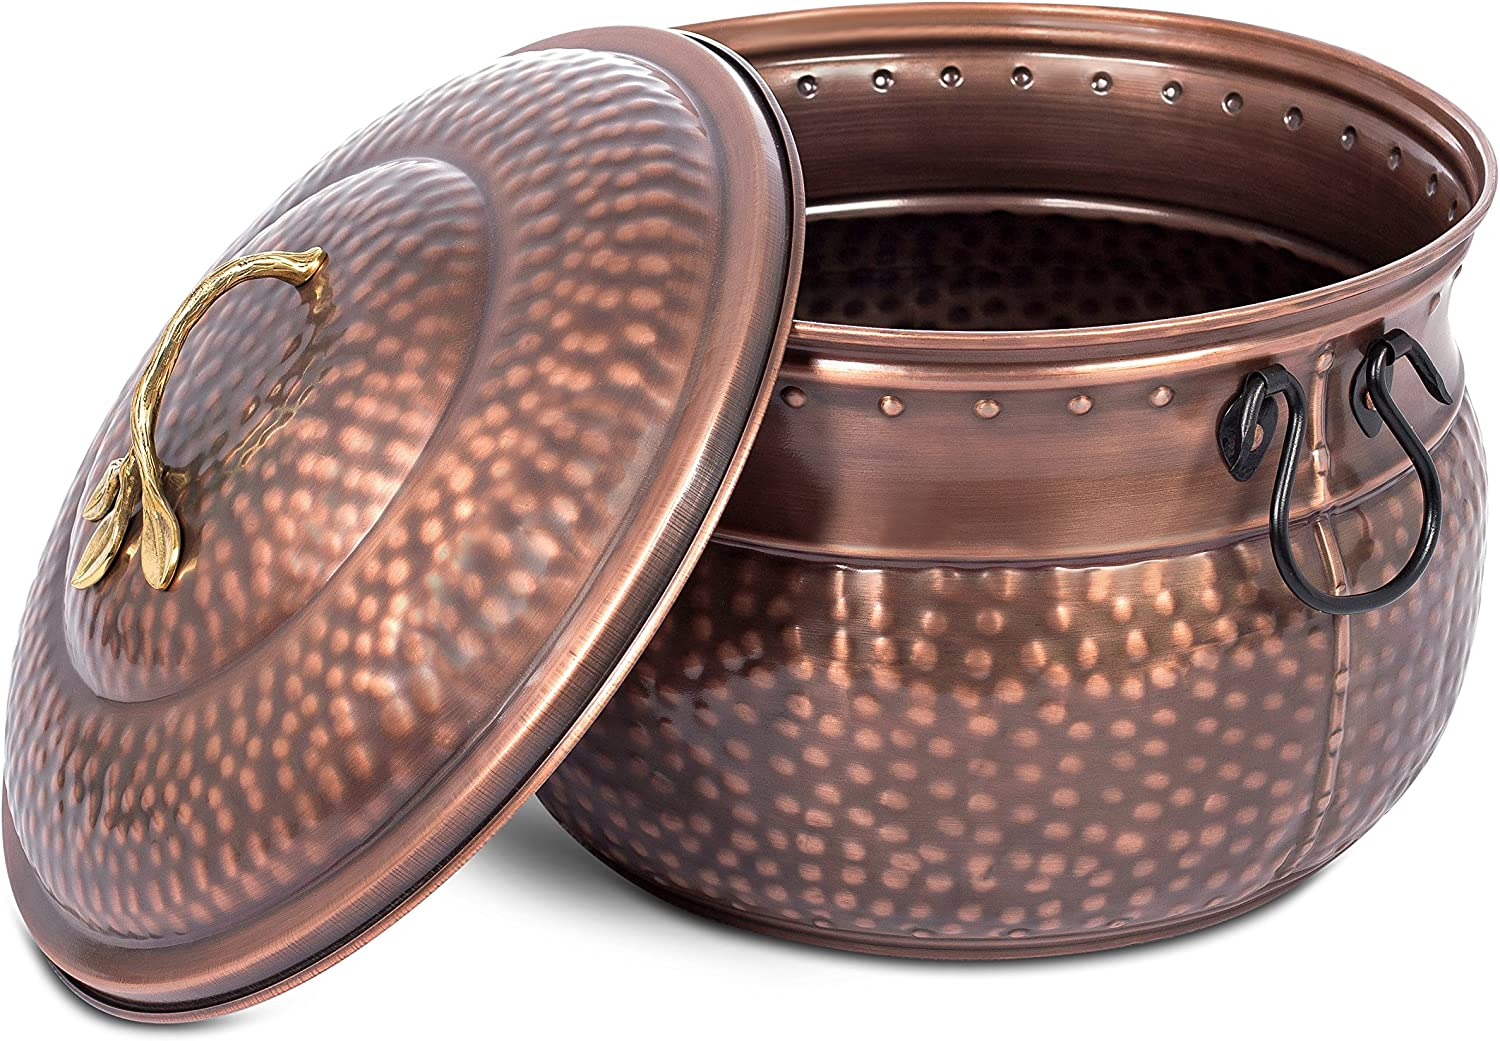 BIRDROCK HOME Decorative Water Hose Holder with Lid - Ground Garden Hose Pot - Beautiful - Handle - Embossed - Steel Metal with Copper Accents - Outdoor or Indoor Use